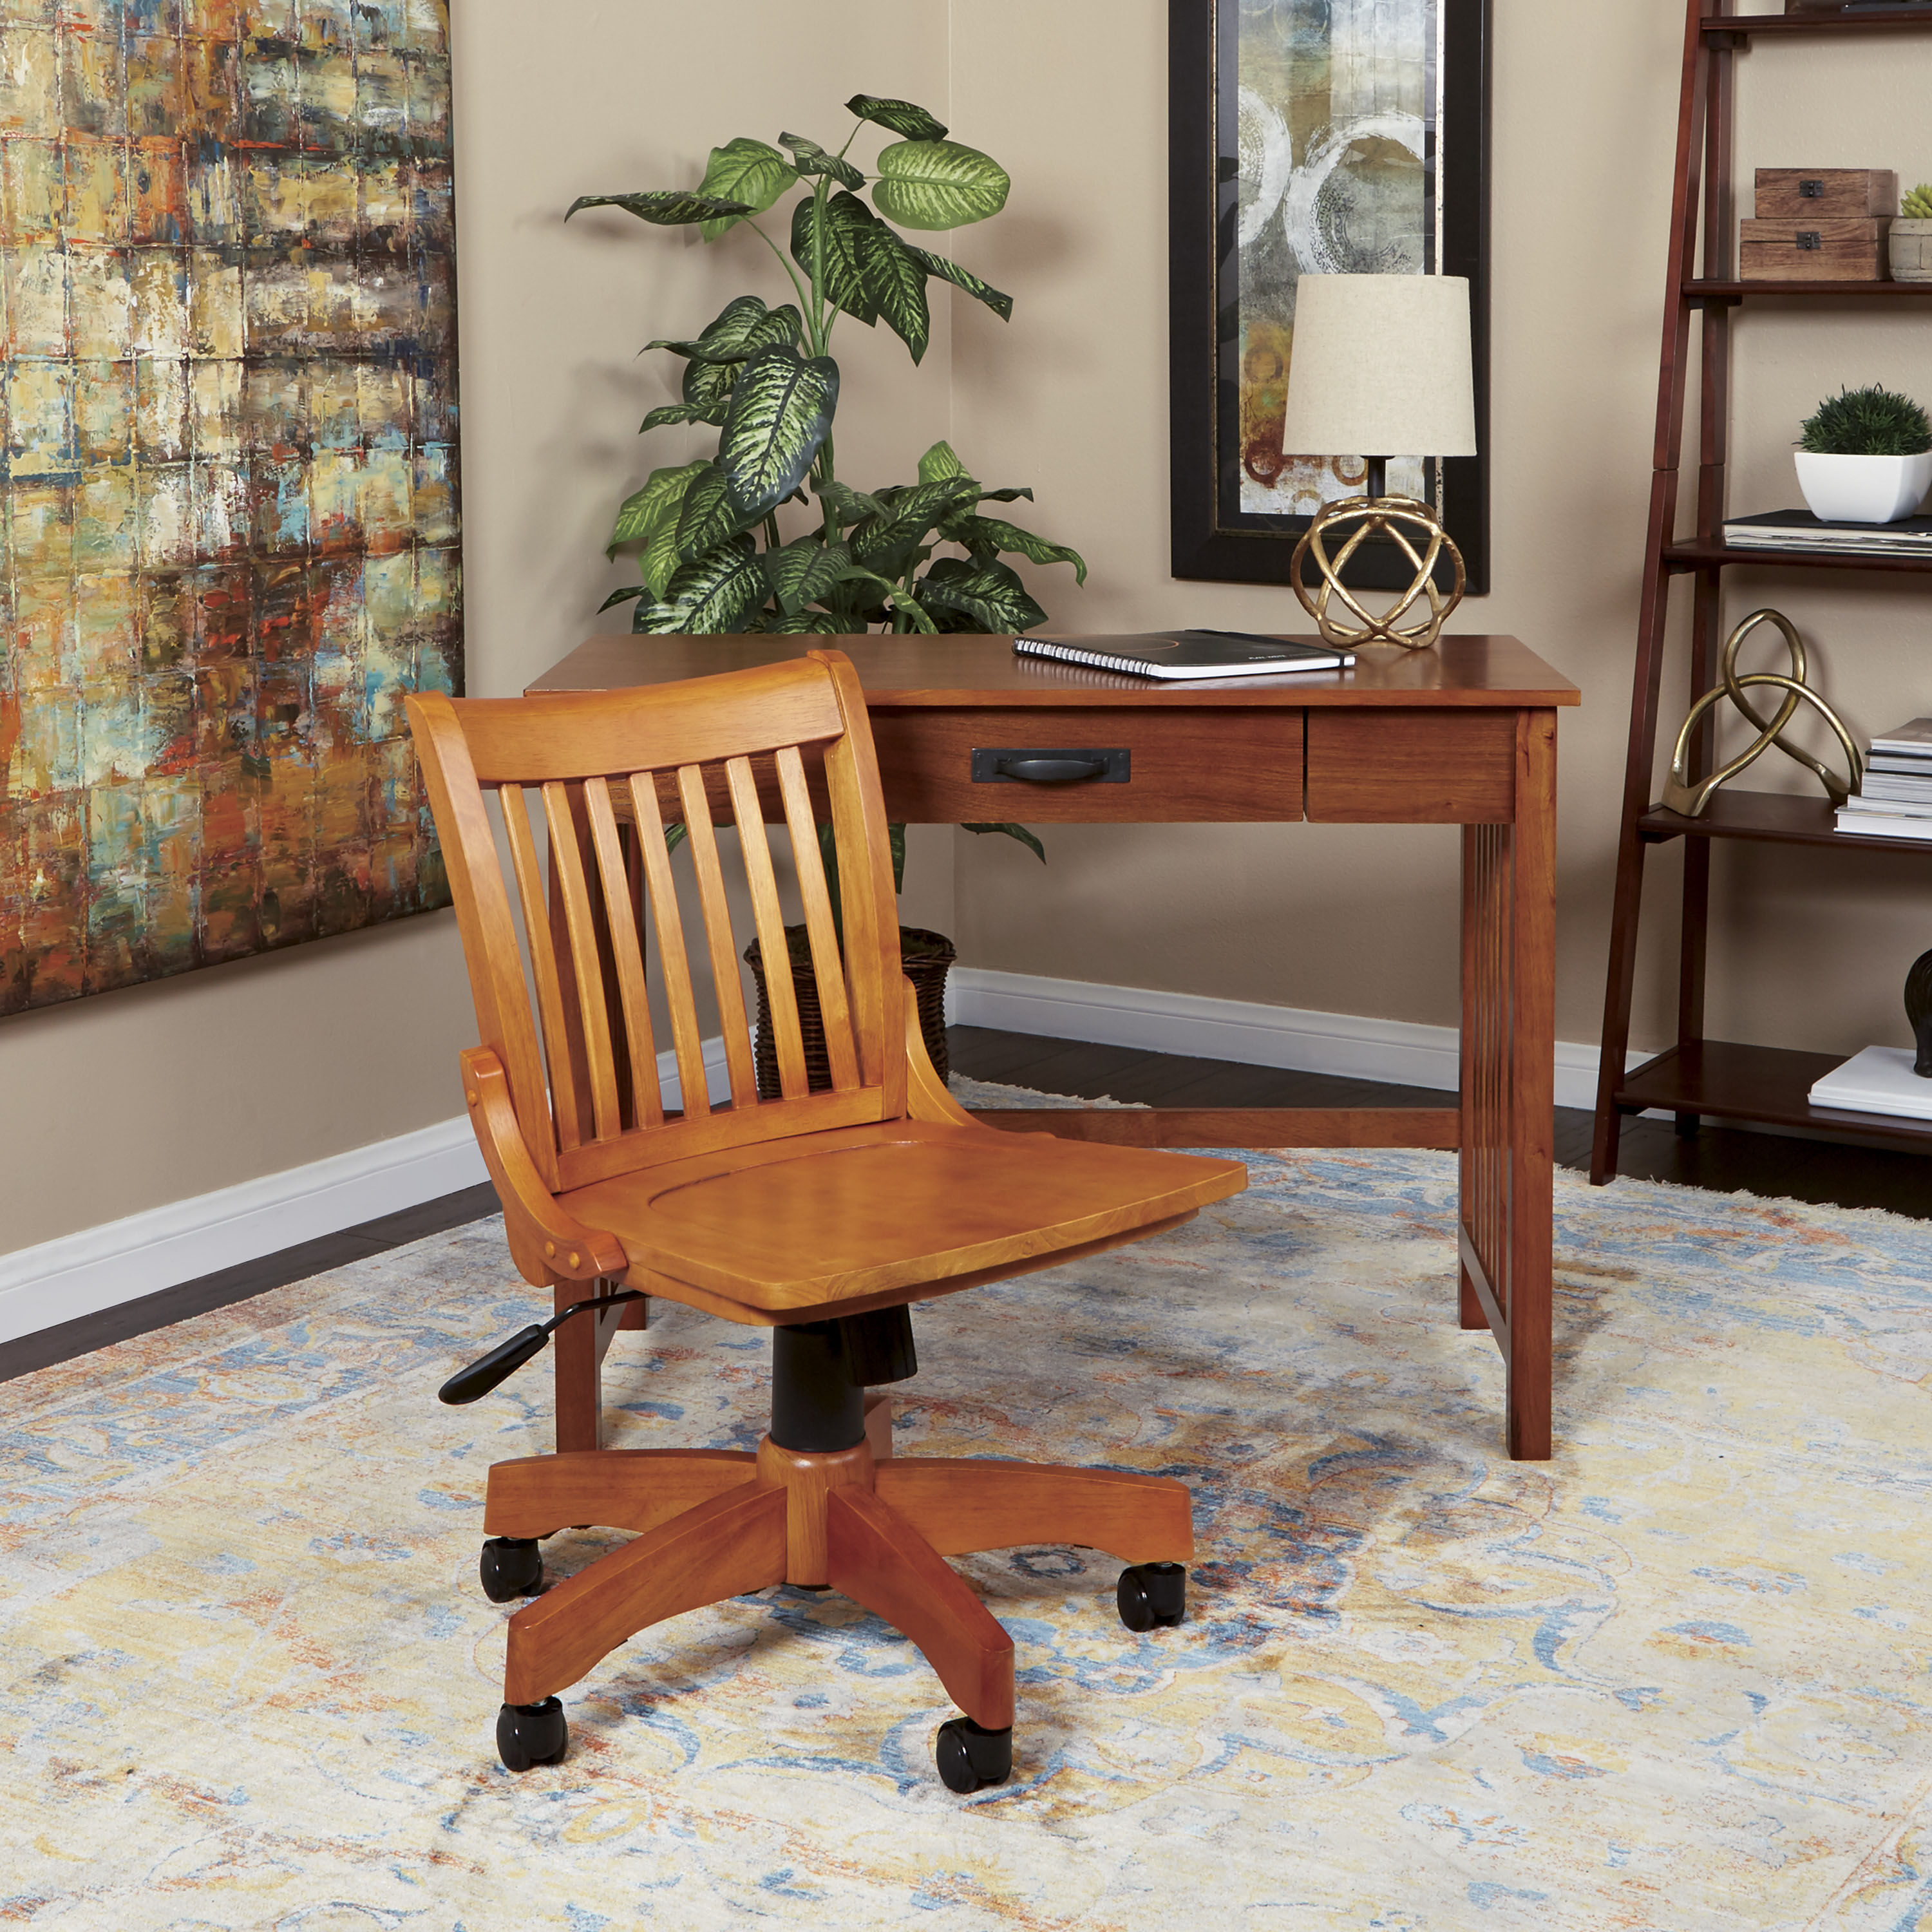 Etonnant ... Our OSP Designs Deluxe Armless Wood Bankeru0027s Desk Chair With Wood Seat    Fruitwood Is On